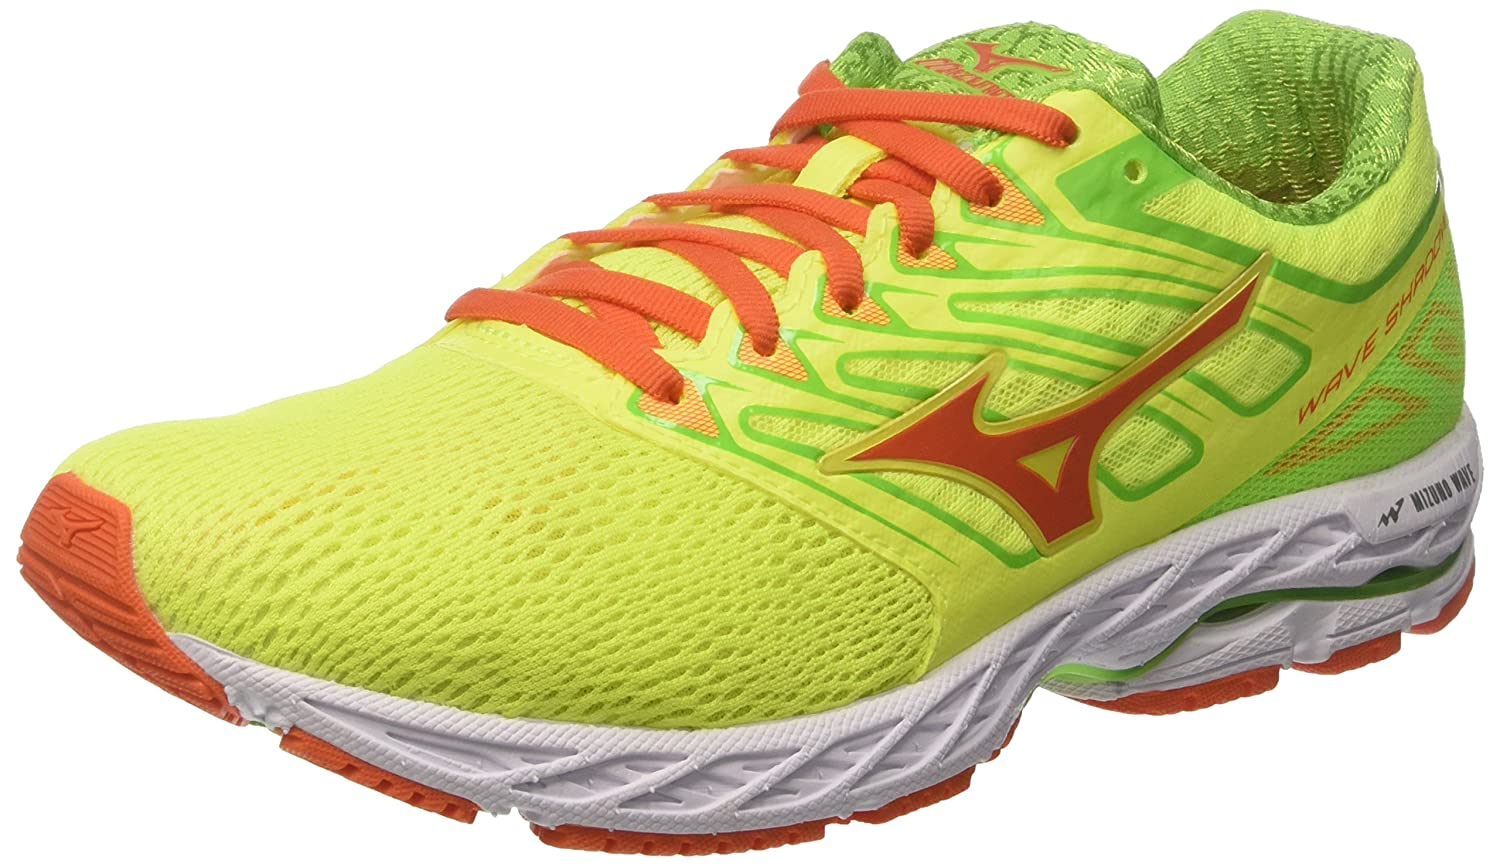 Mizuno Wave Shadow, Zapatillas de Gimnasia para Hombre 42.5 EU|Giallo (Safety Yellow/Red Orange/Jasmine Green)